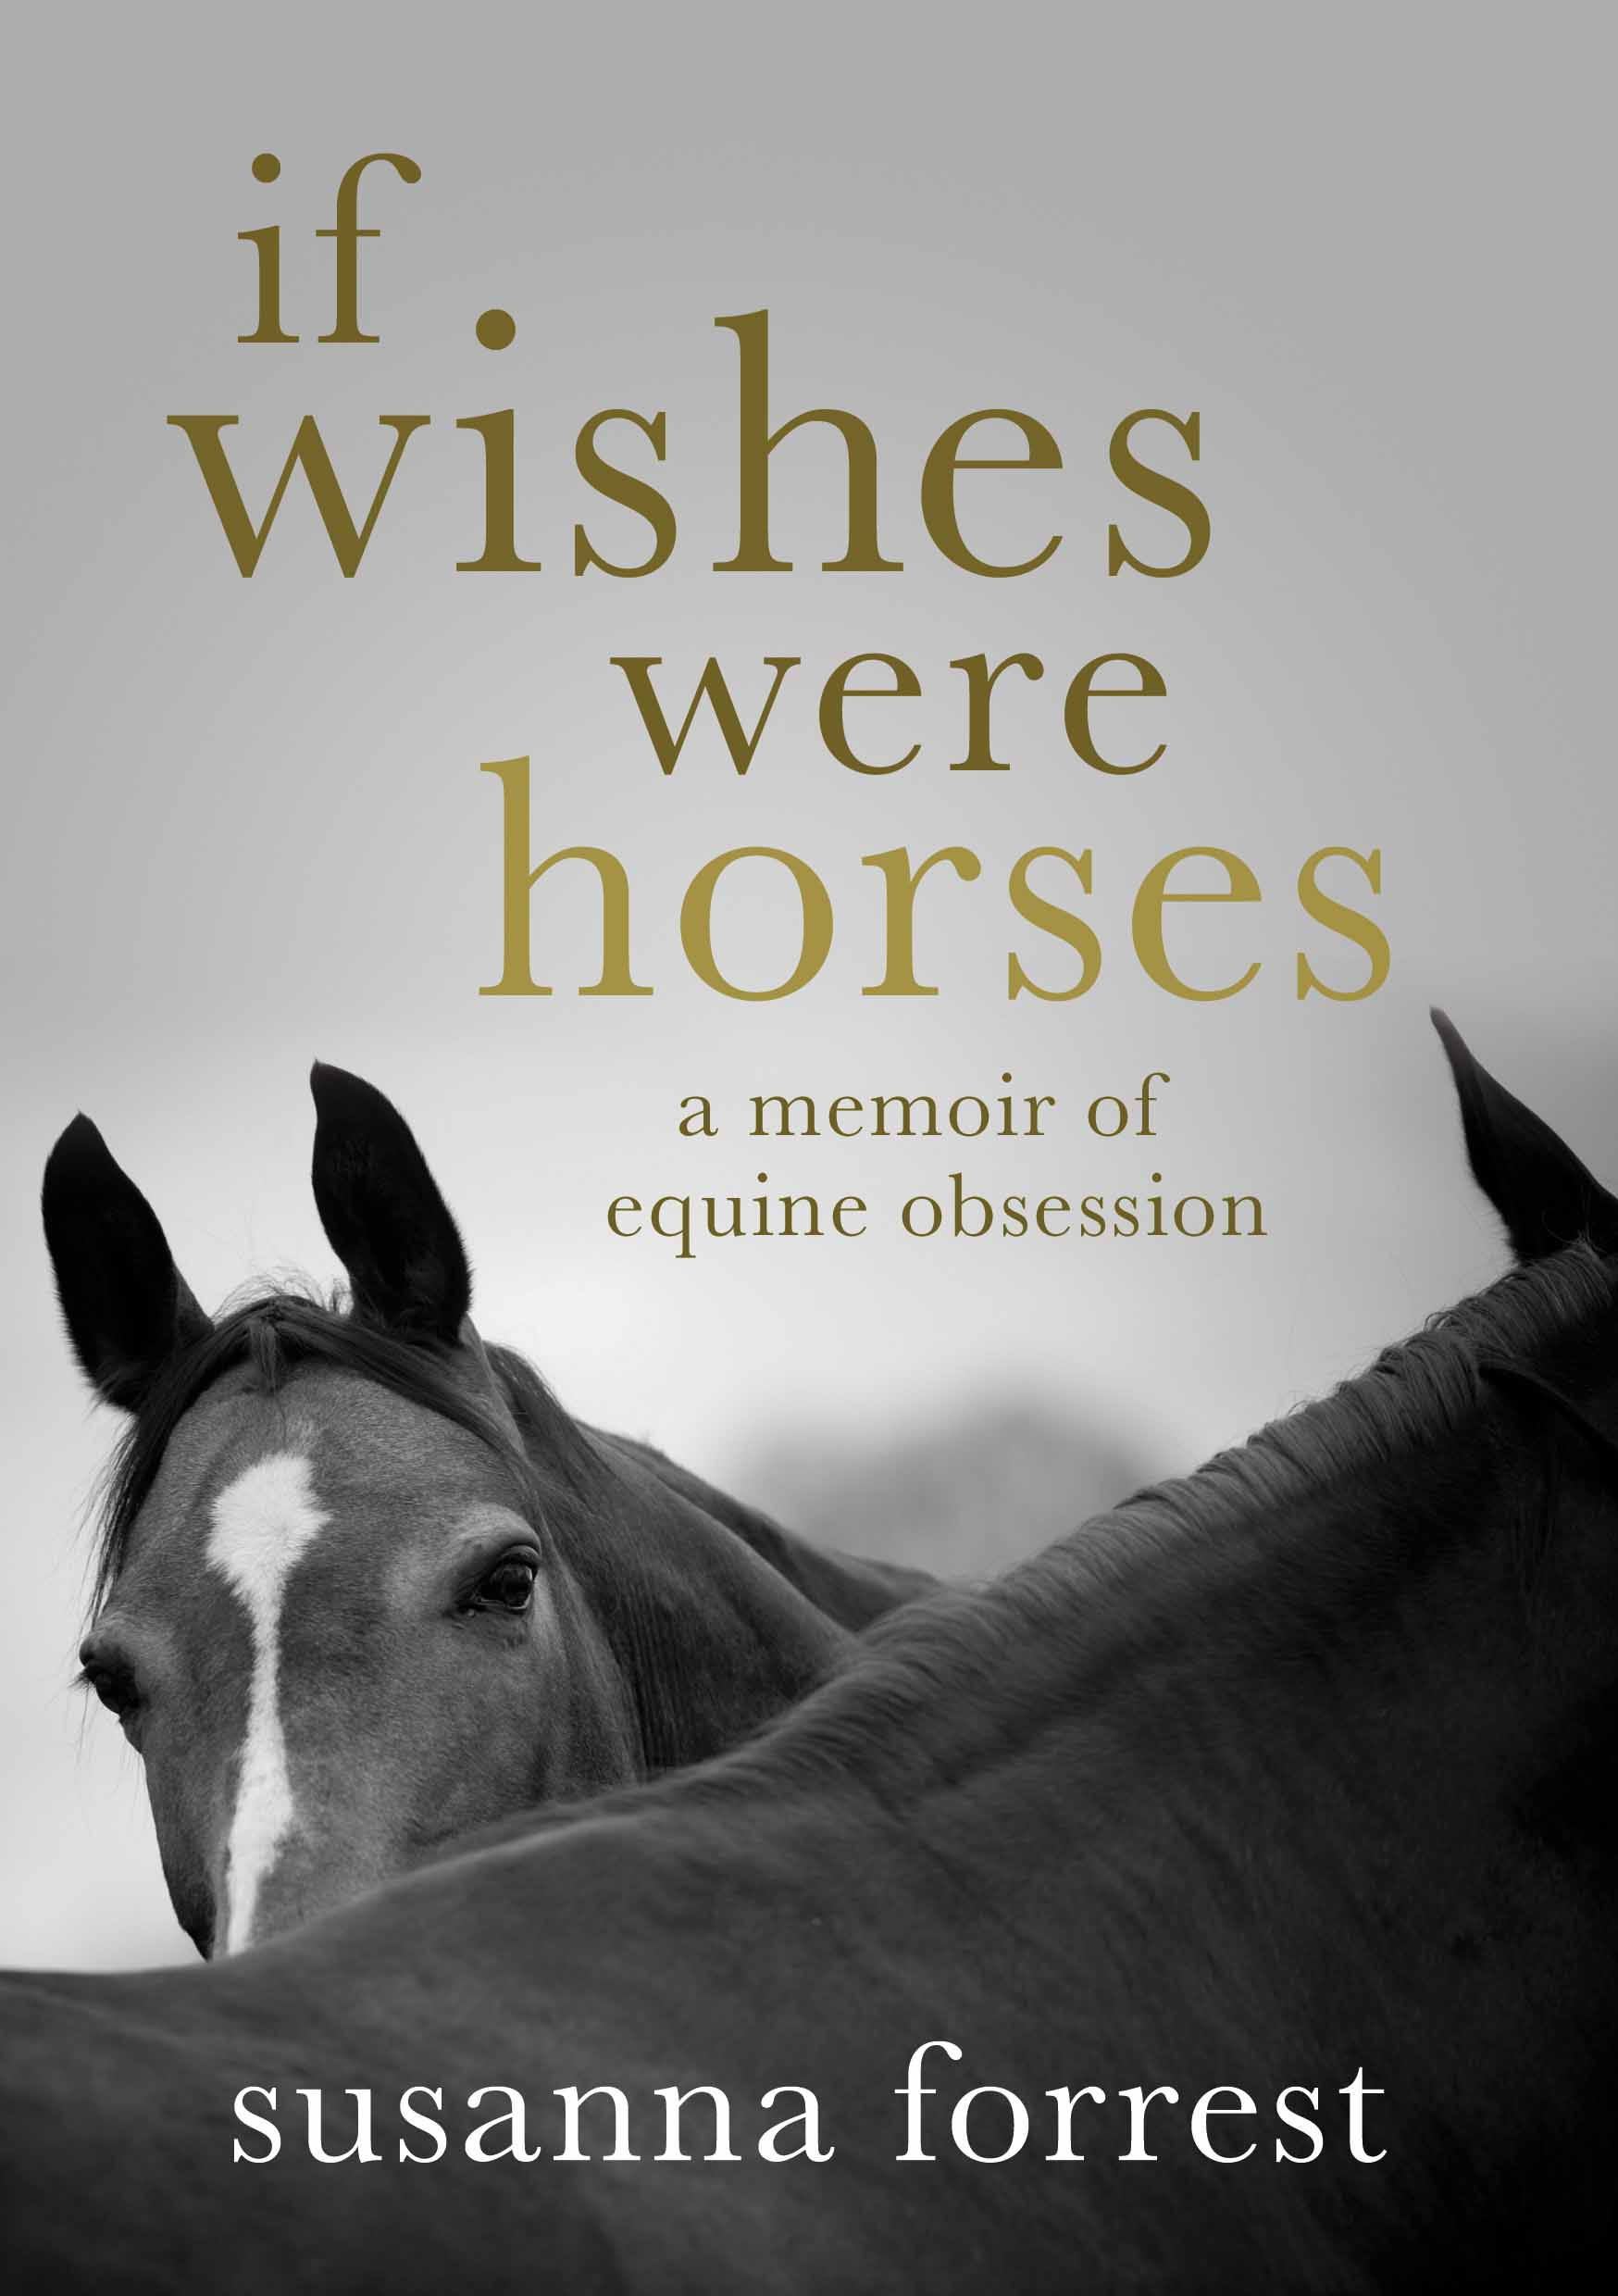 Essay of if wishes were horses